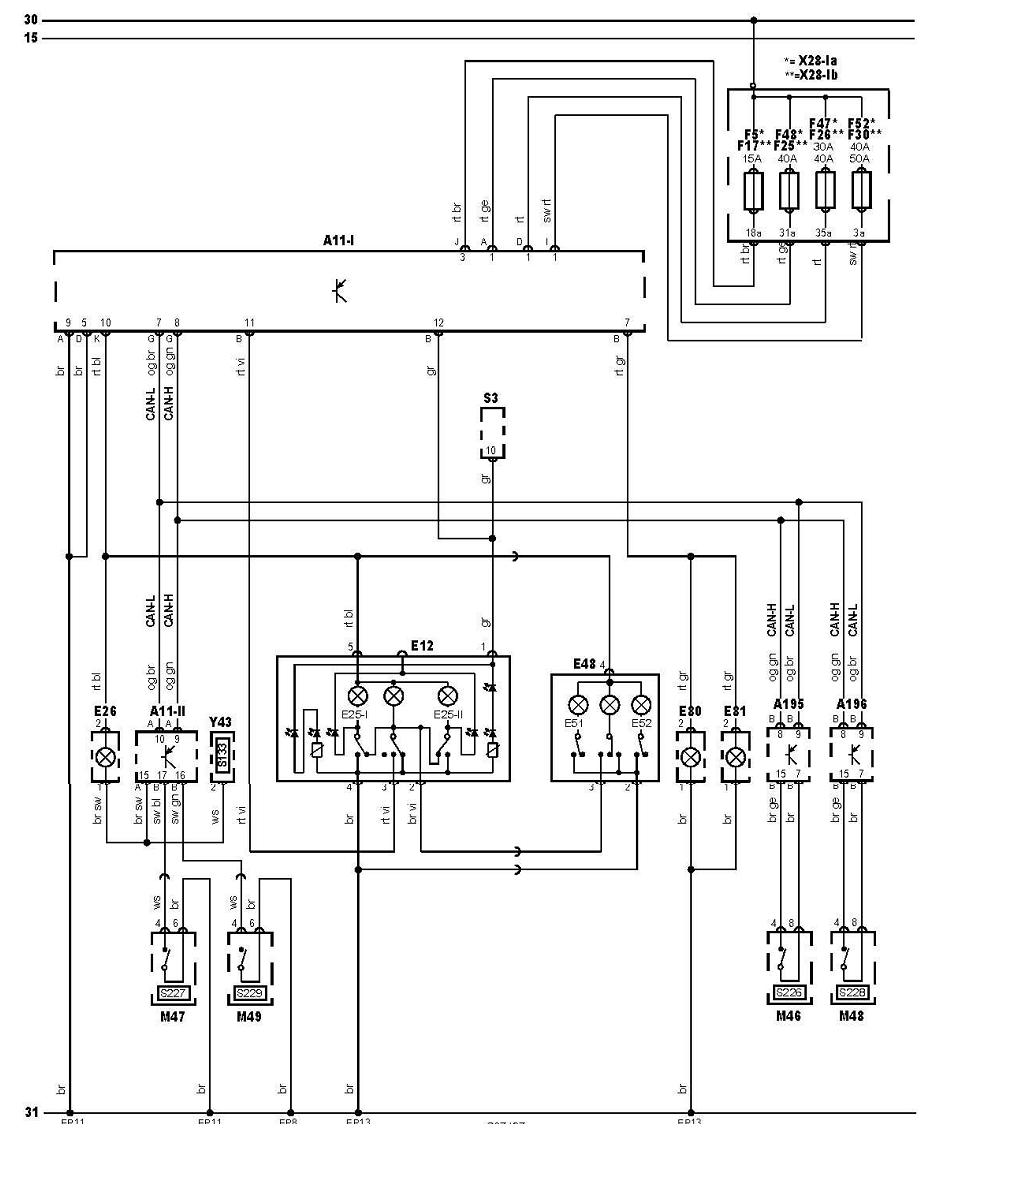 [BZ_1730] Vw Golf Mk4 Central Locking Wiring Diagram